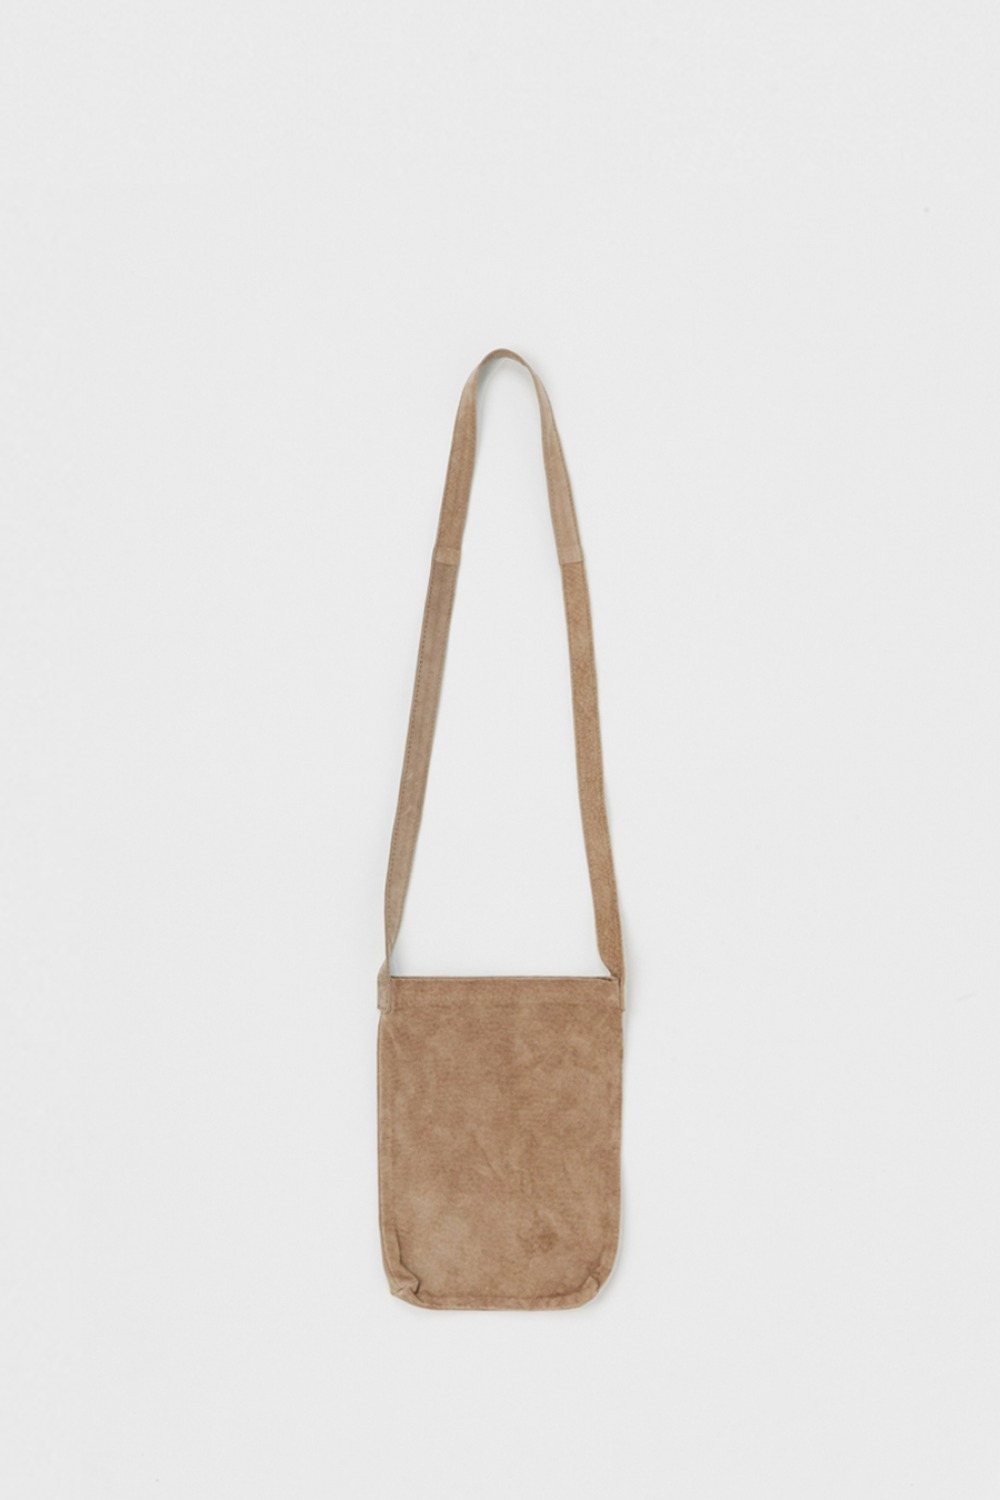 DE-RB-PSS SHOULDER BAG PIG LEATHER SMALL BEIGE